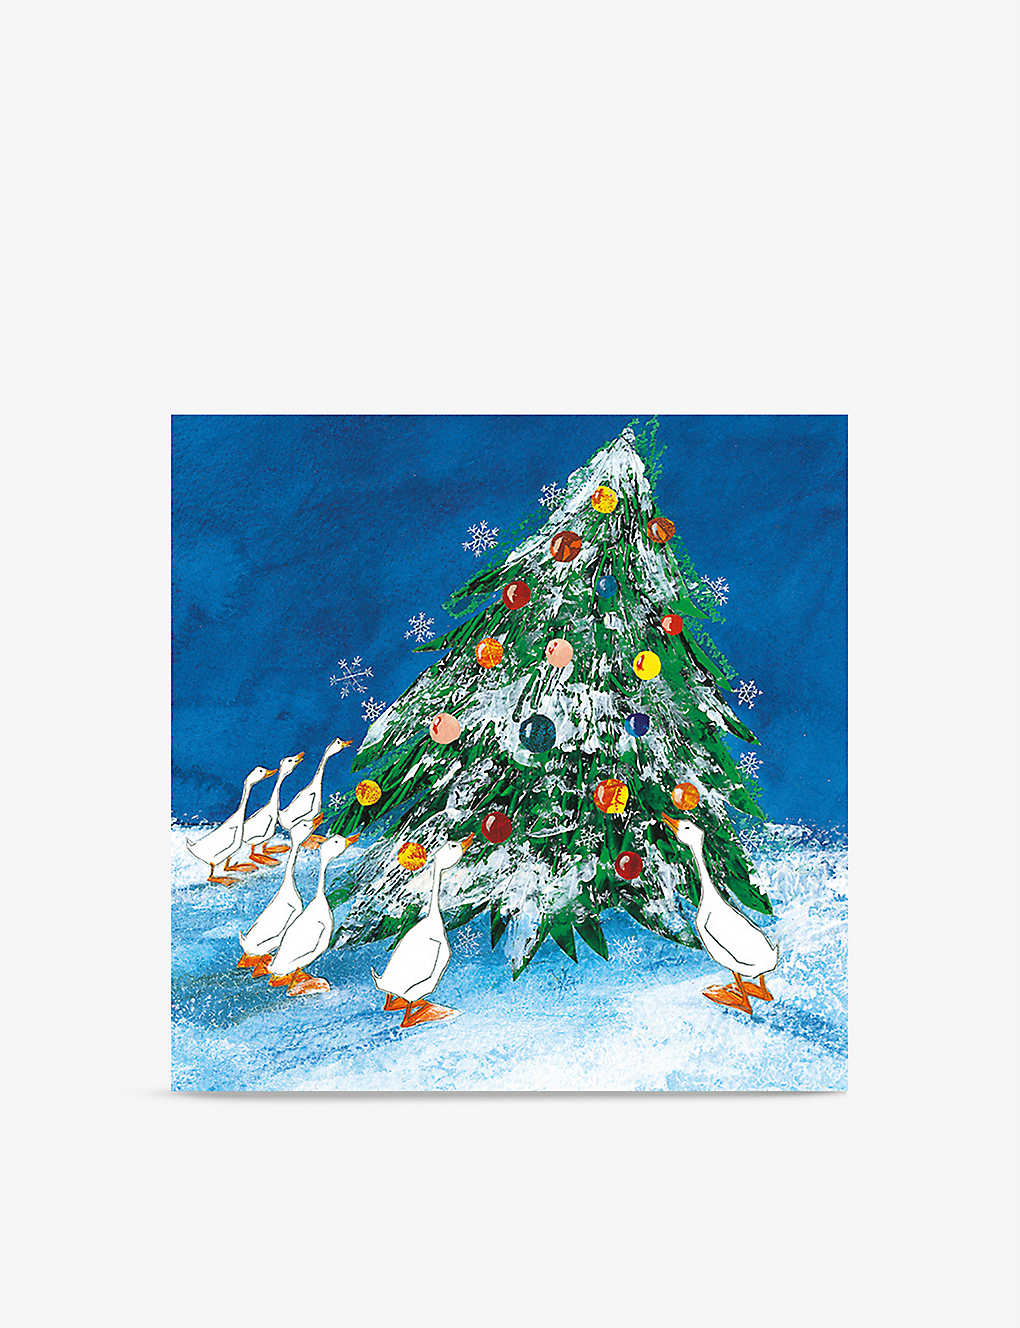 MUSEUMS + GALLERIES: Pack of 8 Tree-motif Christmas greetings cards 14cm x 14cm